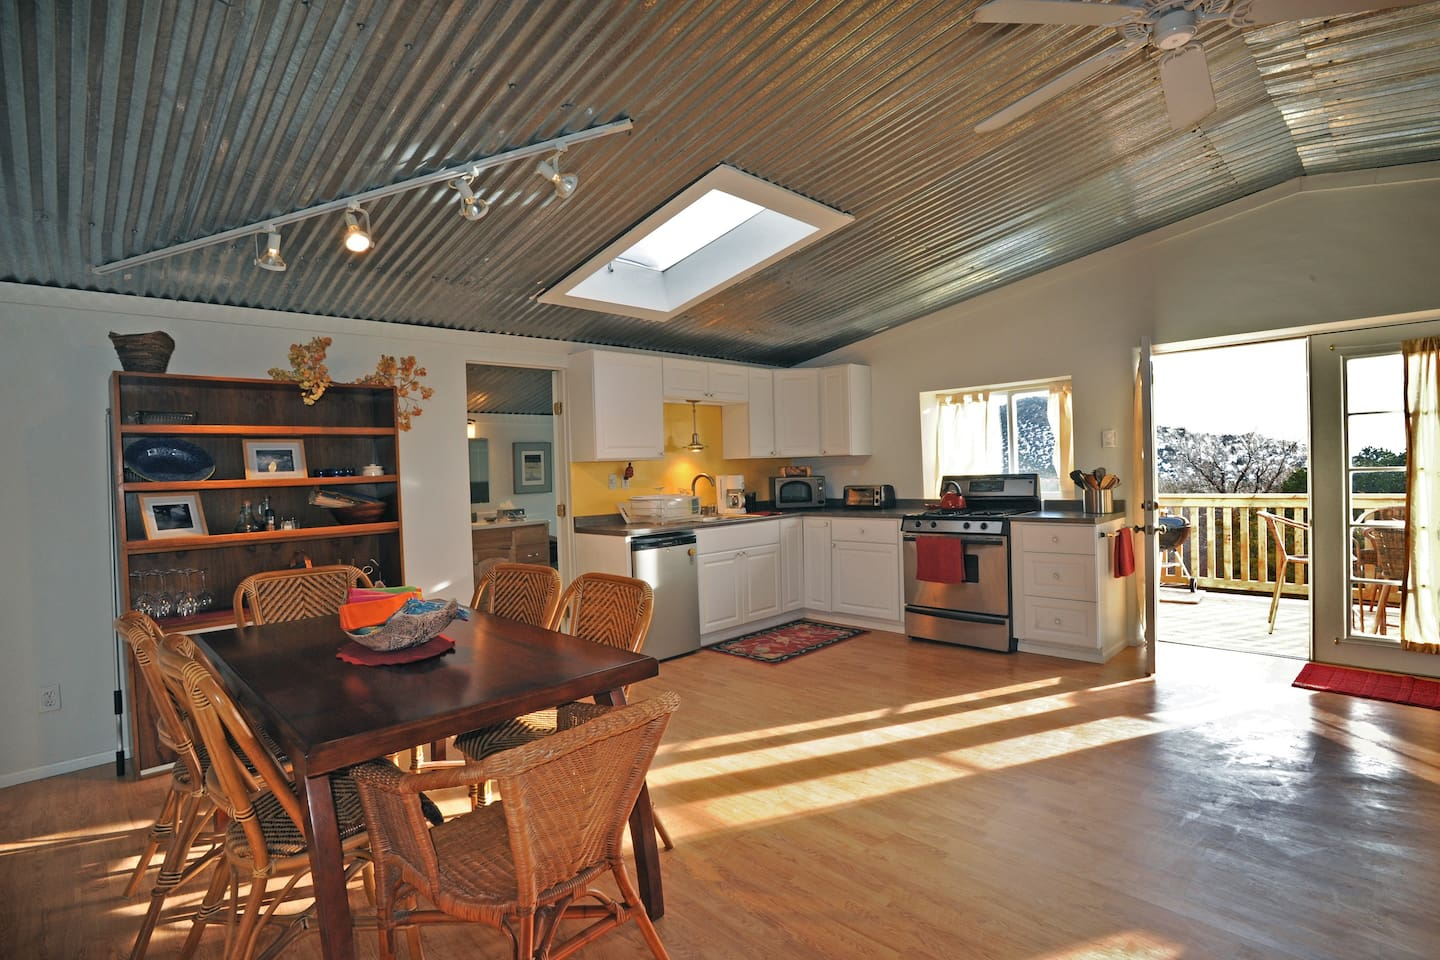 dining and kitchen areas with open doors to bathroom and main entrance from deck